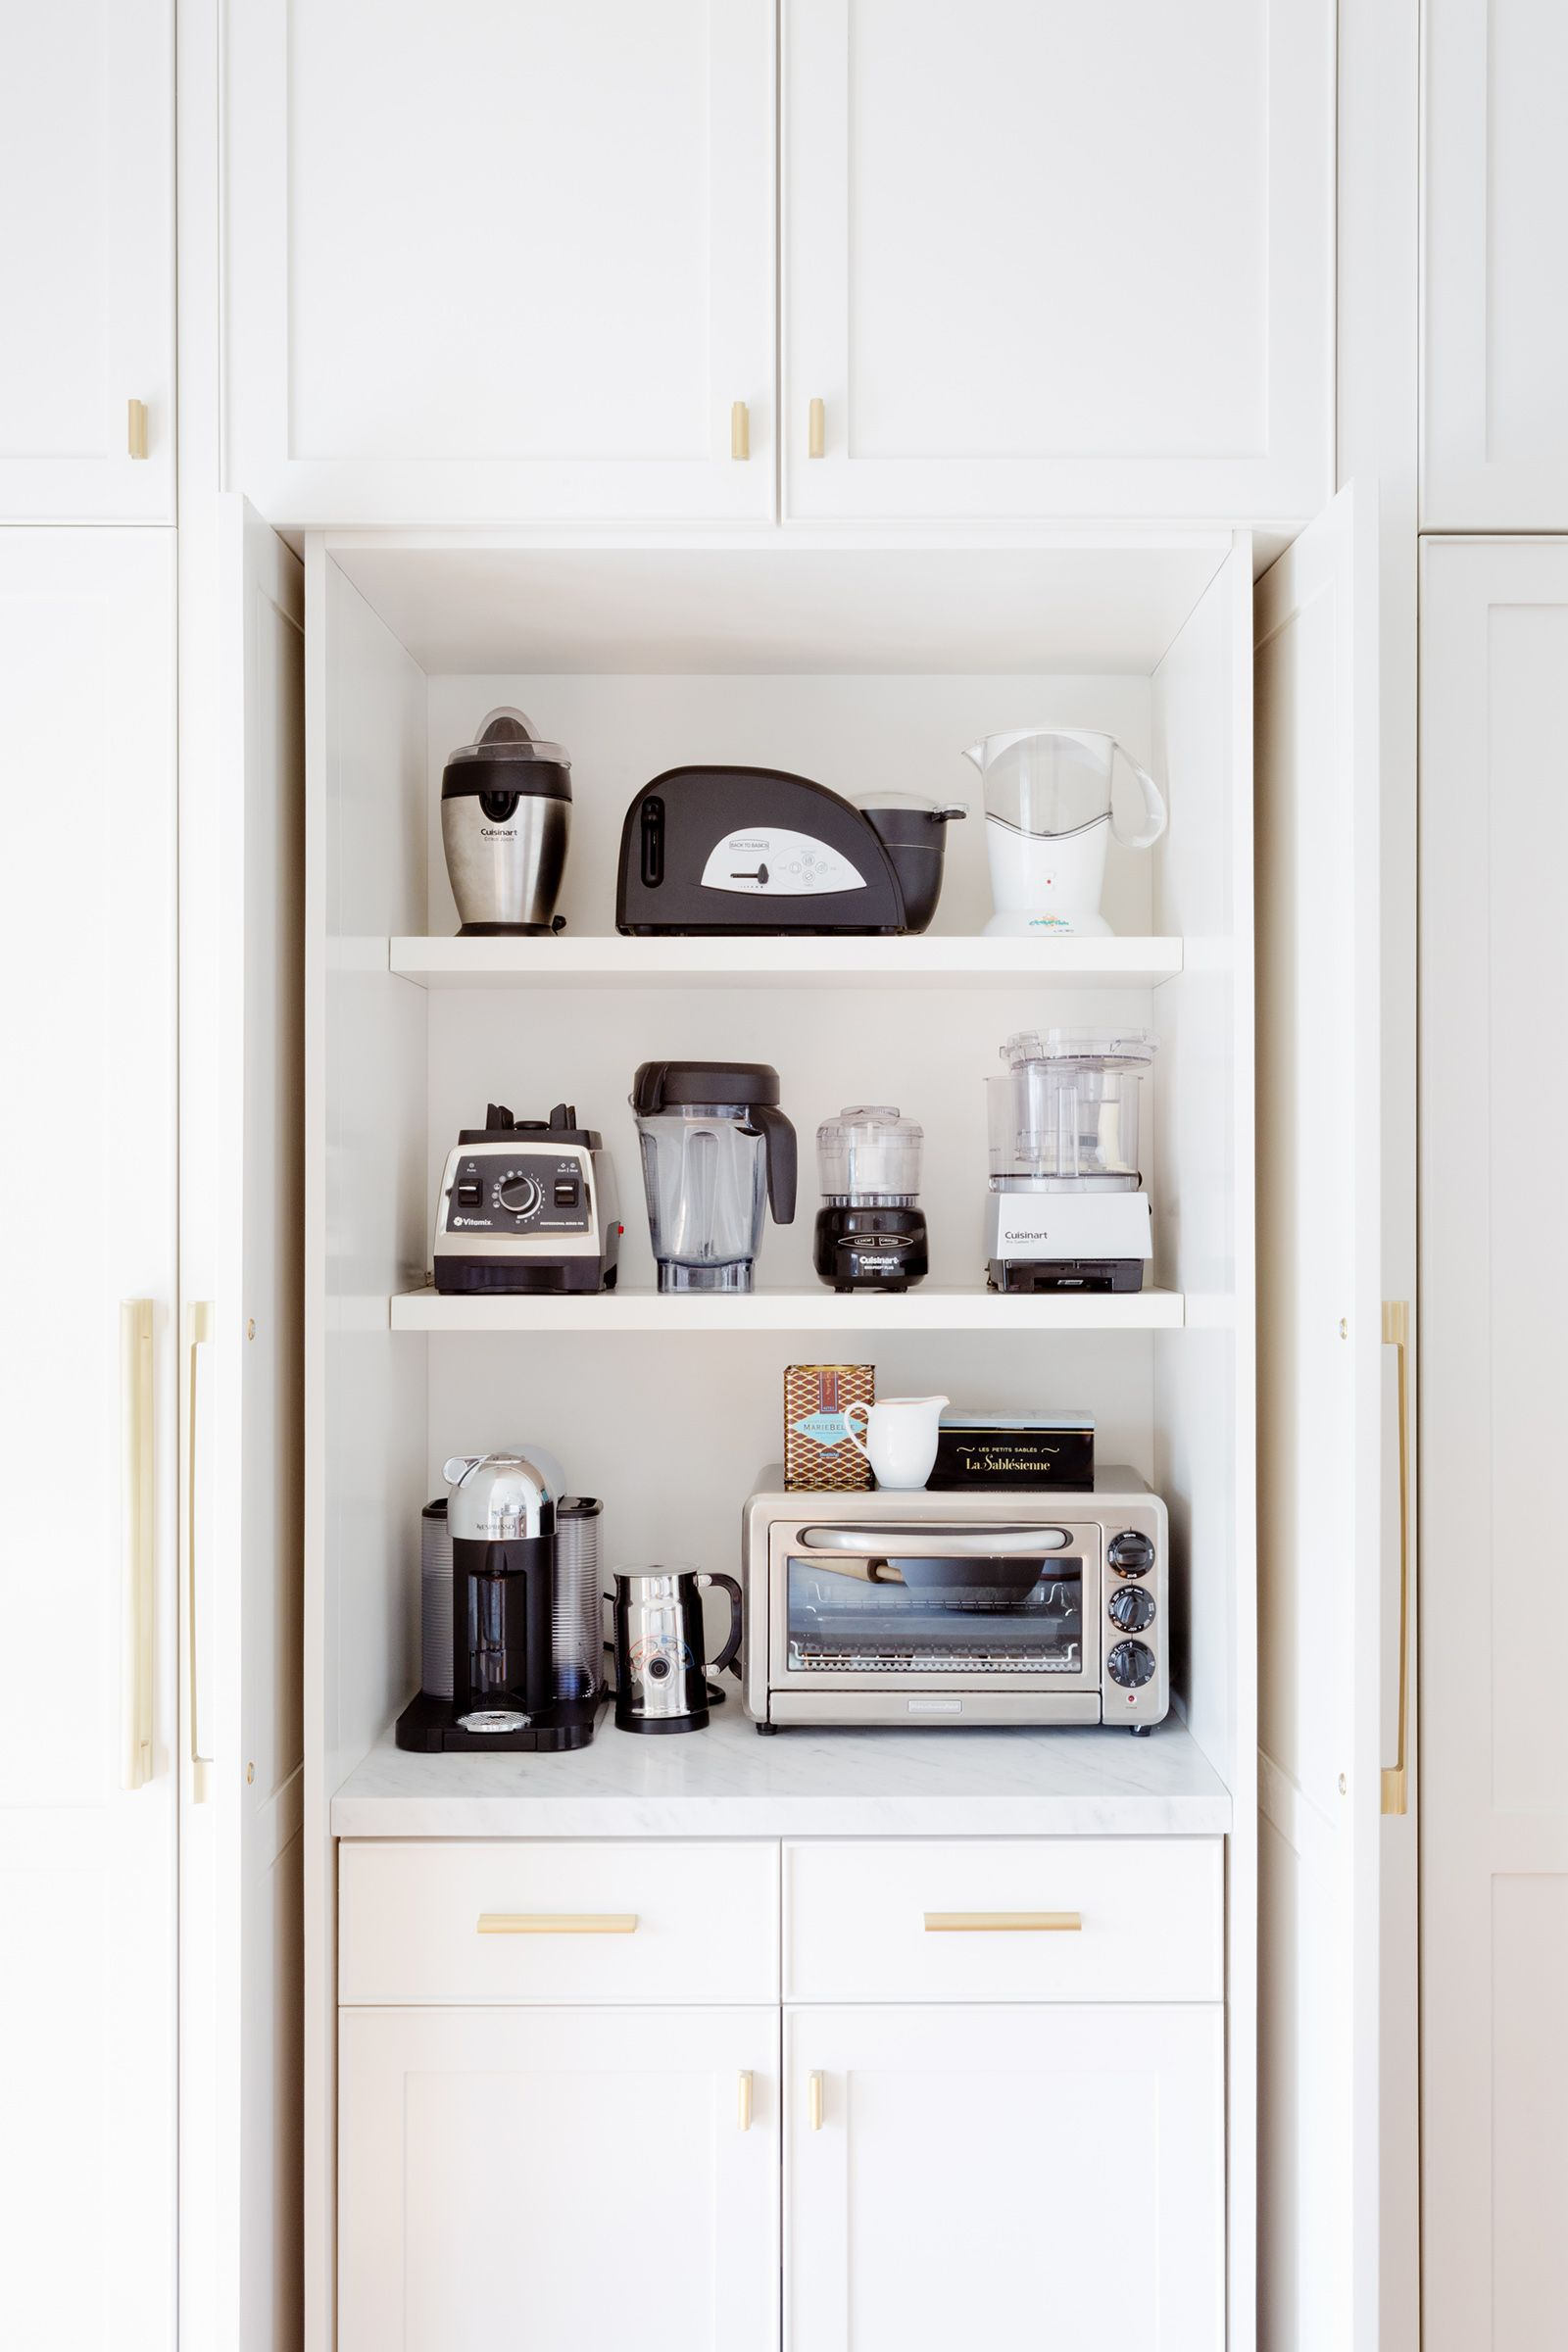 Why Your Kitchen Needs an Appliance Garage